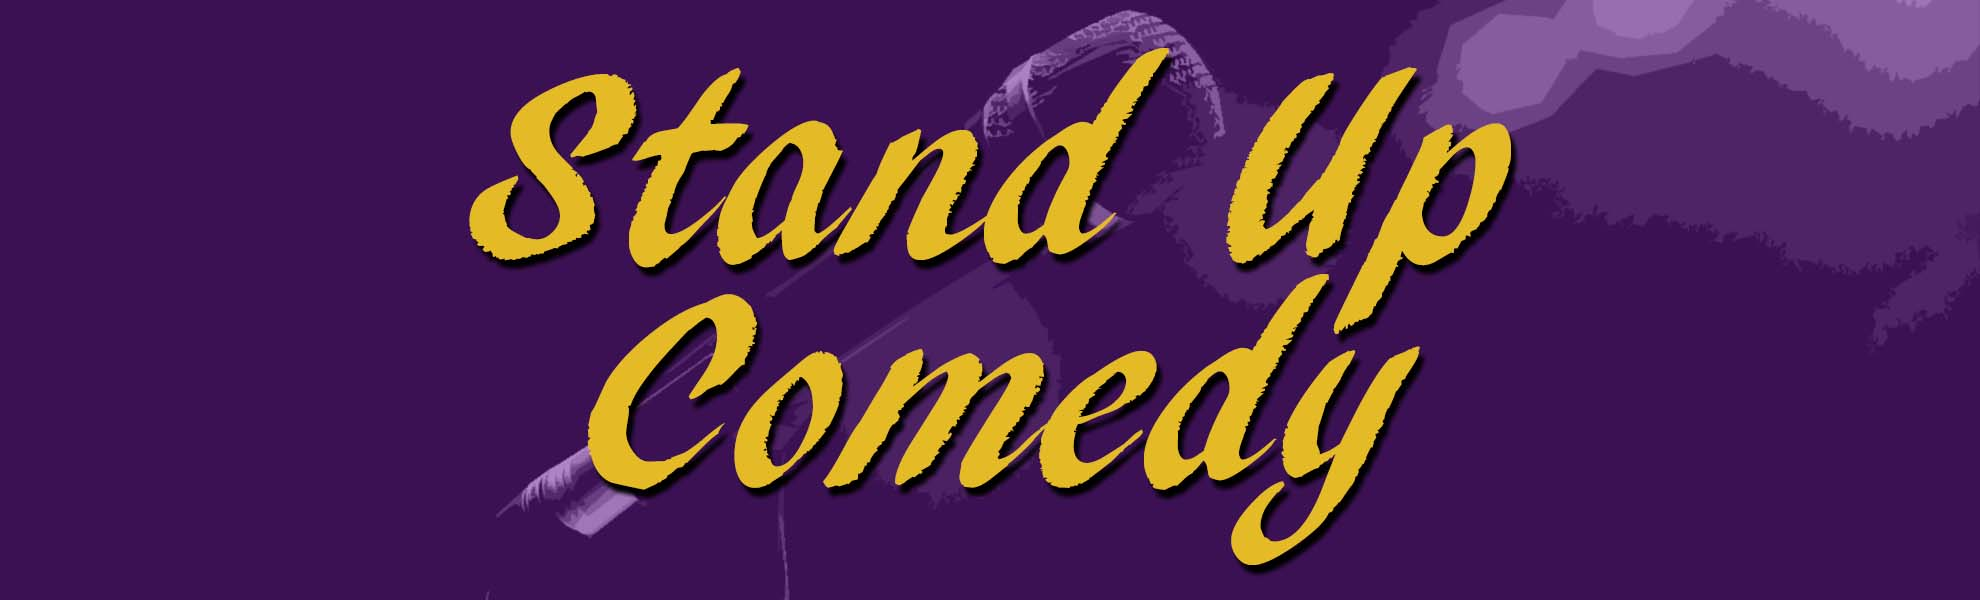 Image result for images of Stand-up comedy